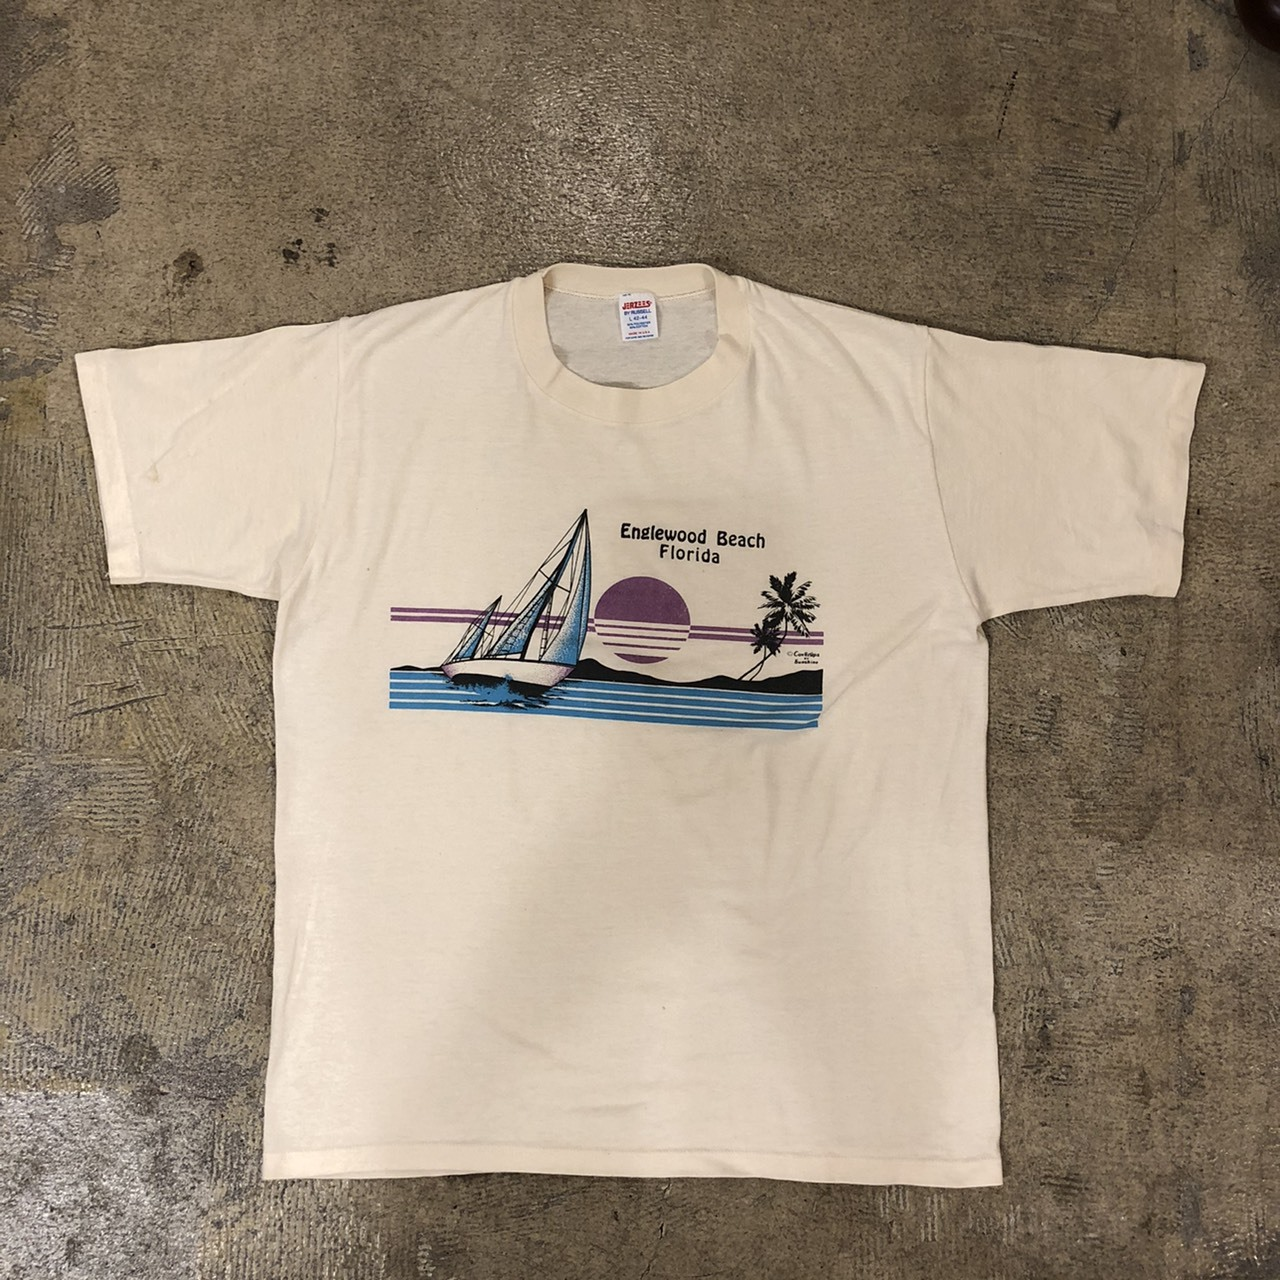 Englewood Beach FloridaTee ¥4,500+tax